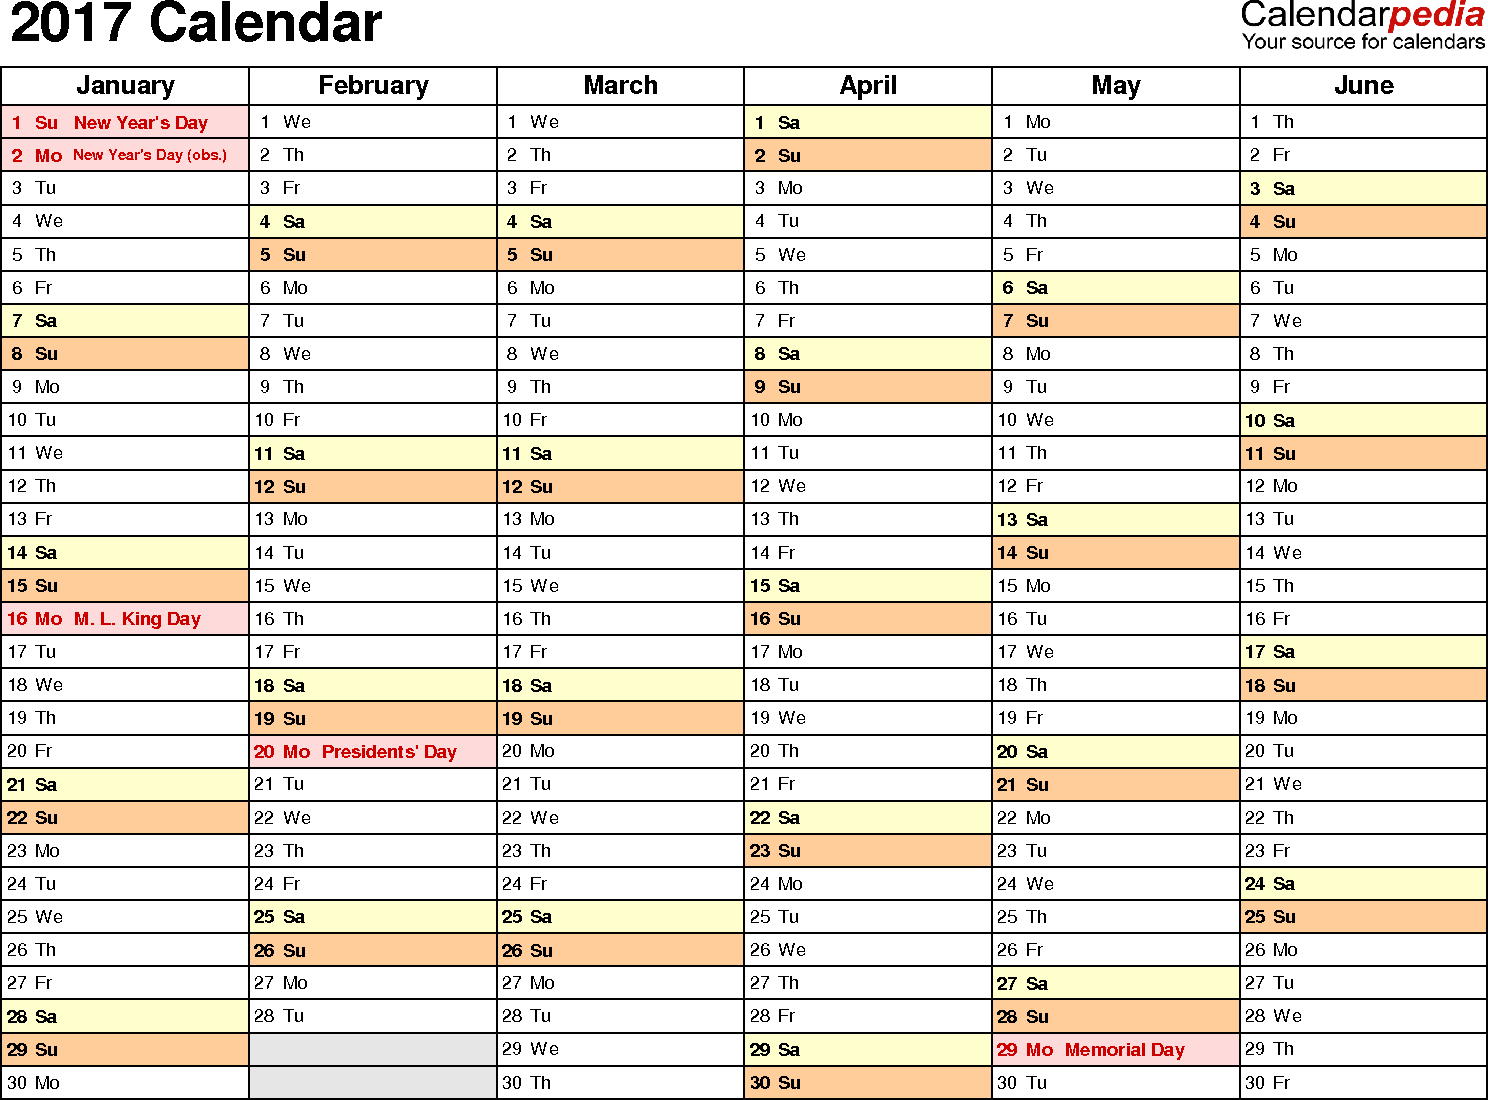 Ediblewildsus  Prepossessing  Calendar  Download  Free Printable Excel Templates Xls With Interesting Template   Calendar For Excel Months Horizontally  Pages Landscape Orientation With Agreeable Excel National Bank Also Microsoft Excel Mobile In Addition Rate Excel Function And How To Get Excel On Mac For Free As Well As Business Financial Statement Template Excel Additionally Rent Roll Form Excel From Calendarpediacom With Ediblewildsus  Interesting  Calendar  Download  Free Printable Excel Templates Xls With Agreeable Template   Calendar For Excel Months Horizontally  Pages Landscape Orientation And Prepossessing Excel National Bank Also Microsoft Excel Mobile In Addition Rate Excel Function From Calendarpediacom